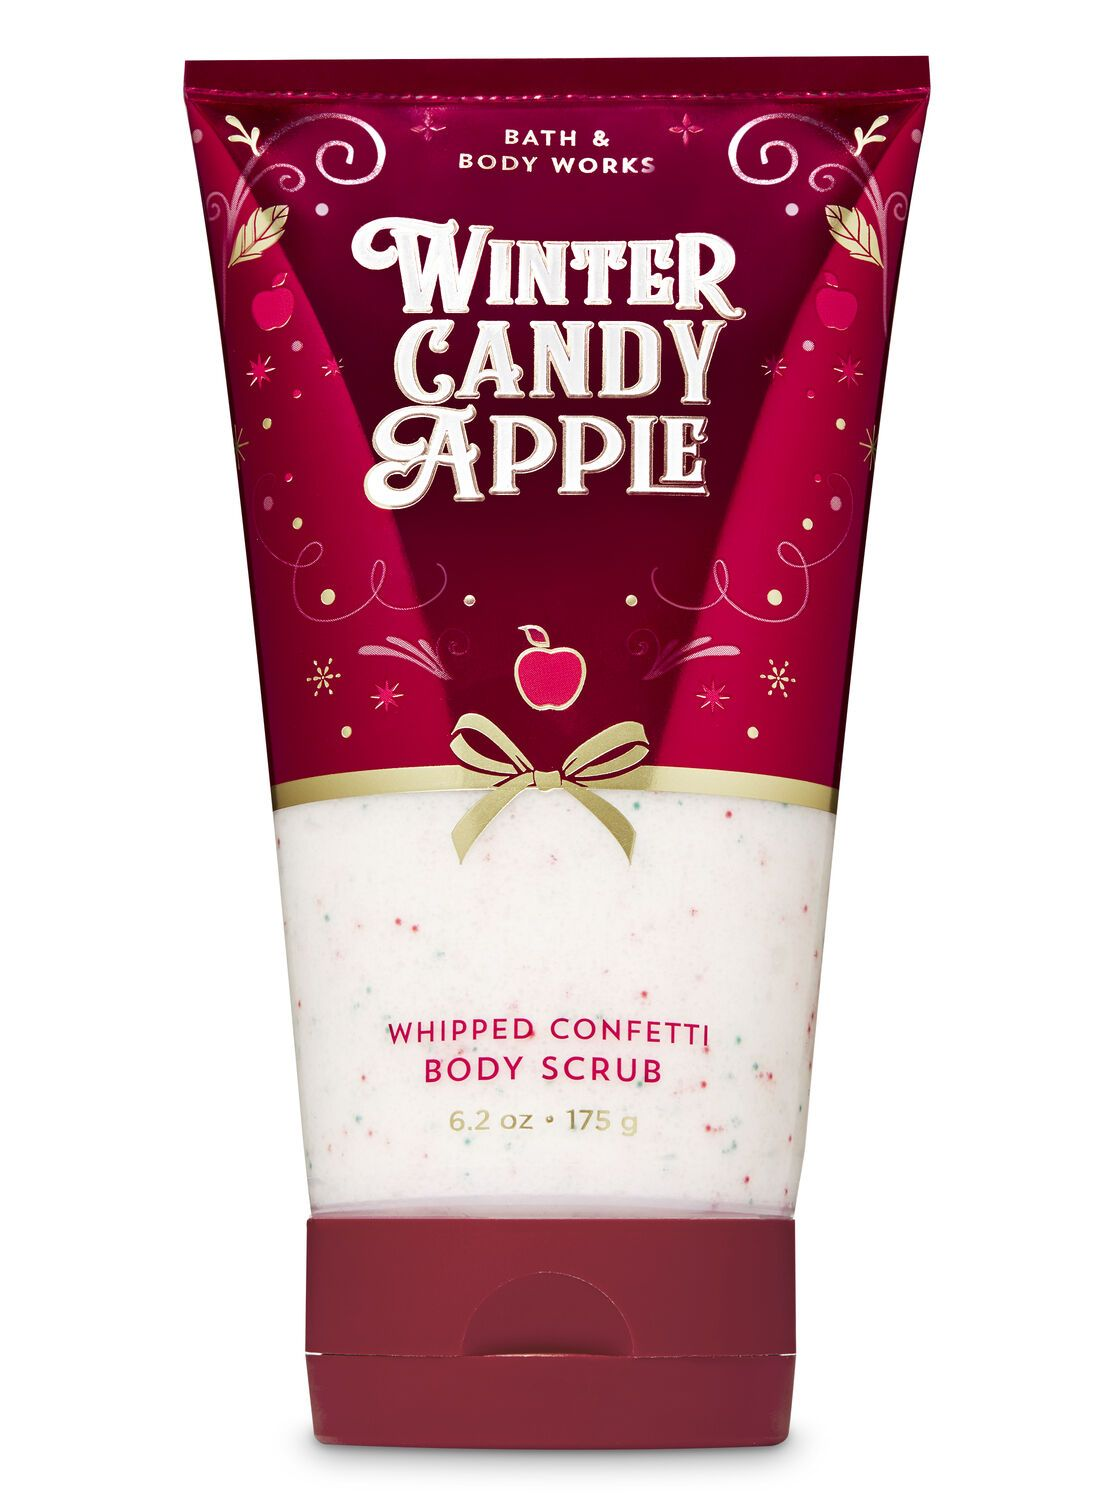 Winter Candy Apple Whipped Confetti Body Scrub